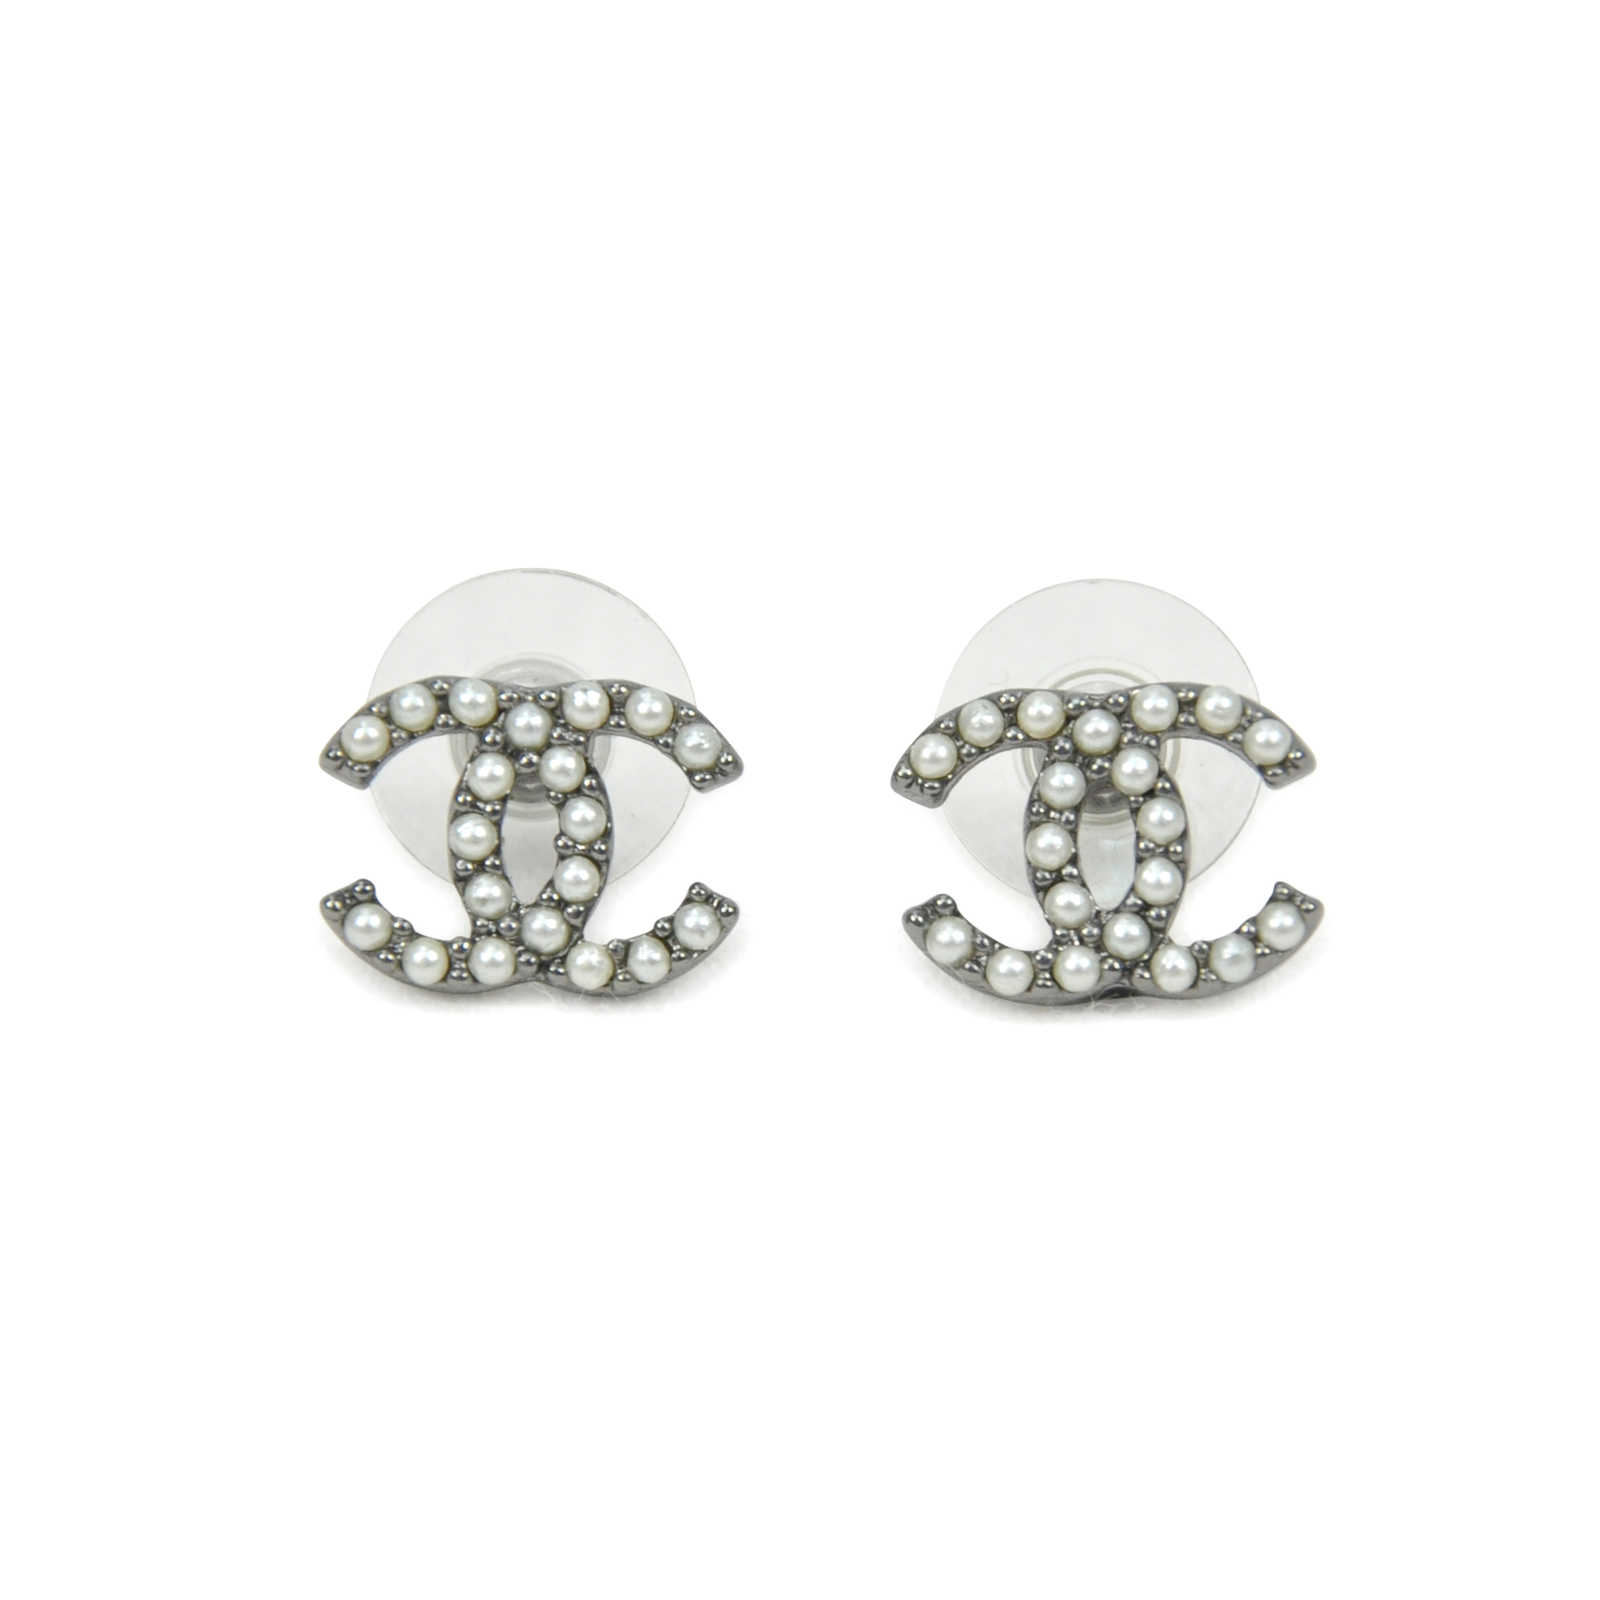 Authentic Second Hand Chanel Pearl Logo Stud Earrings Pss